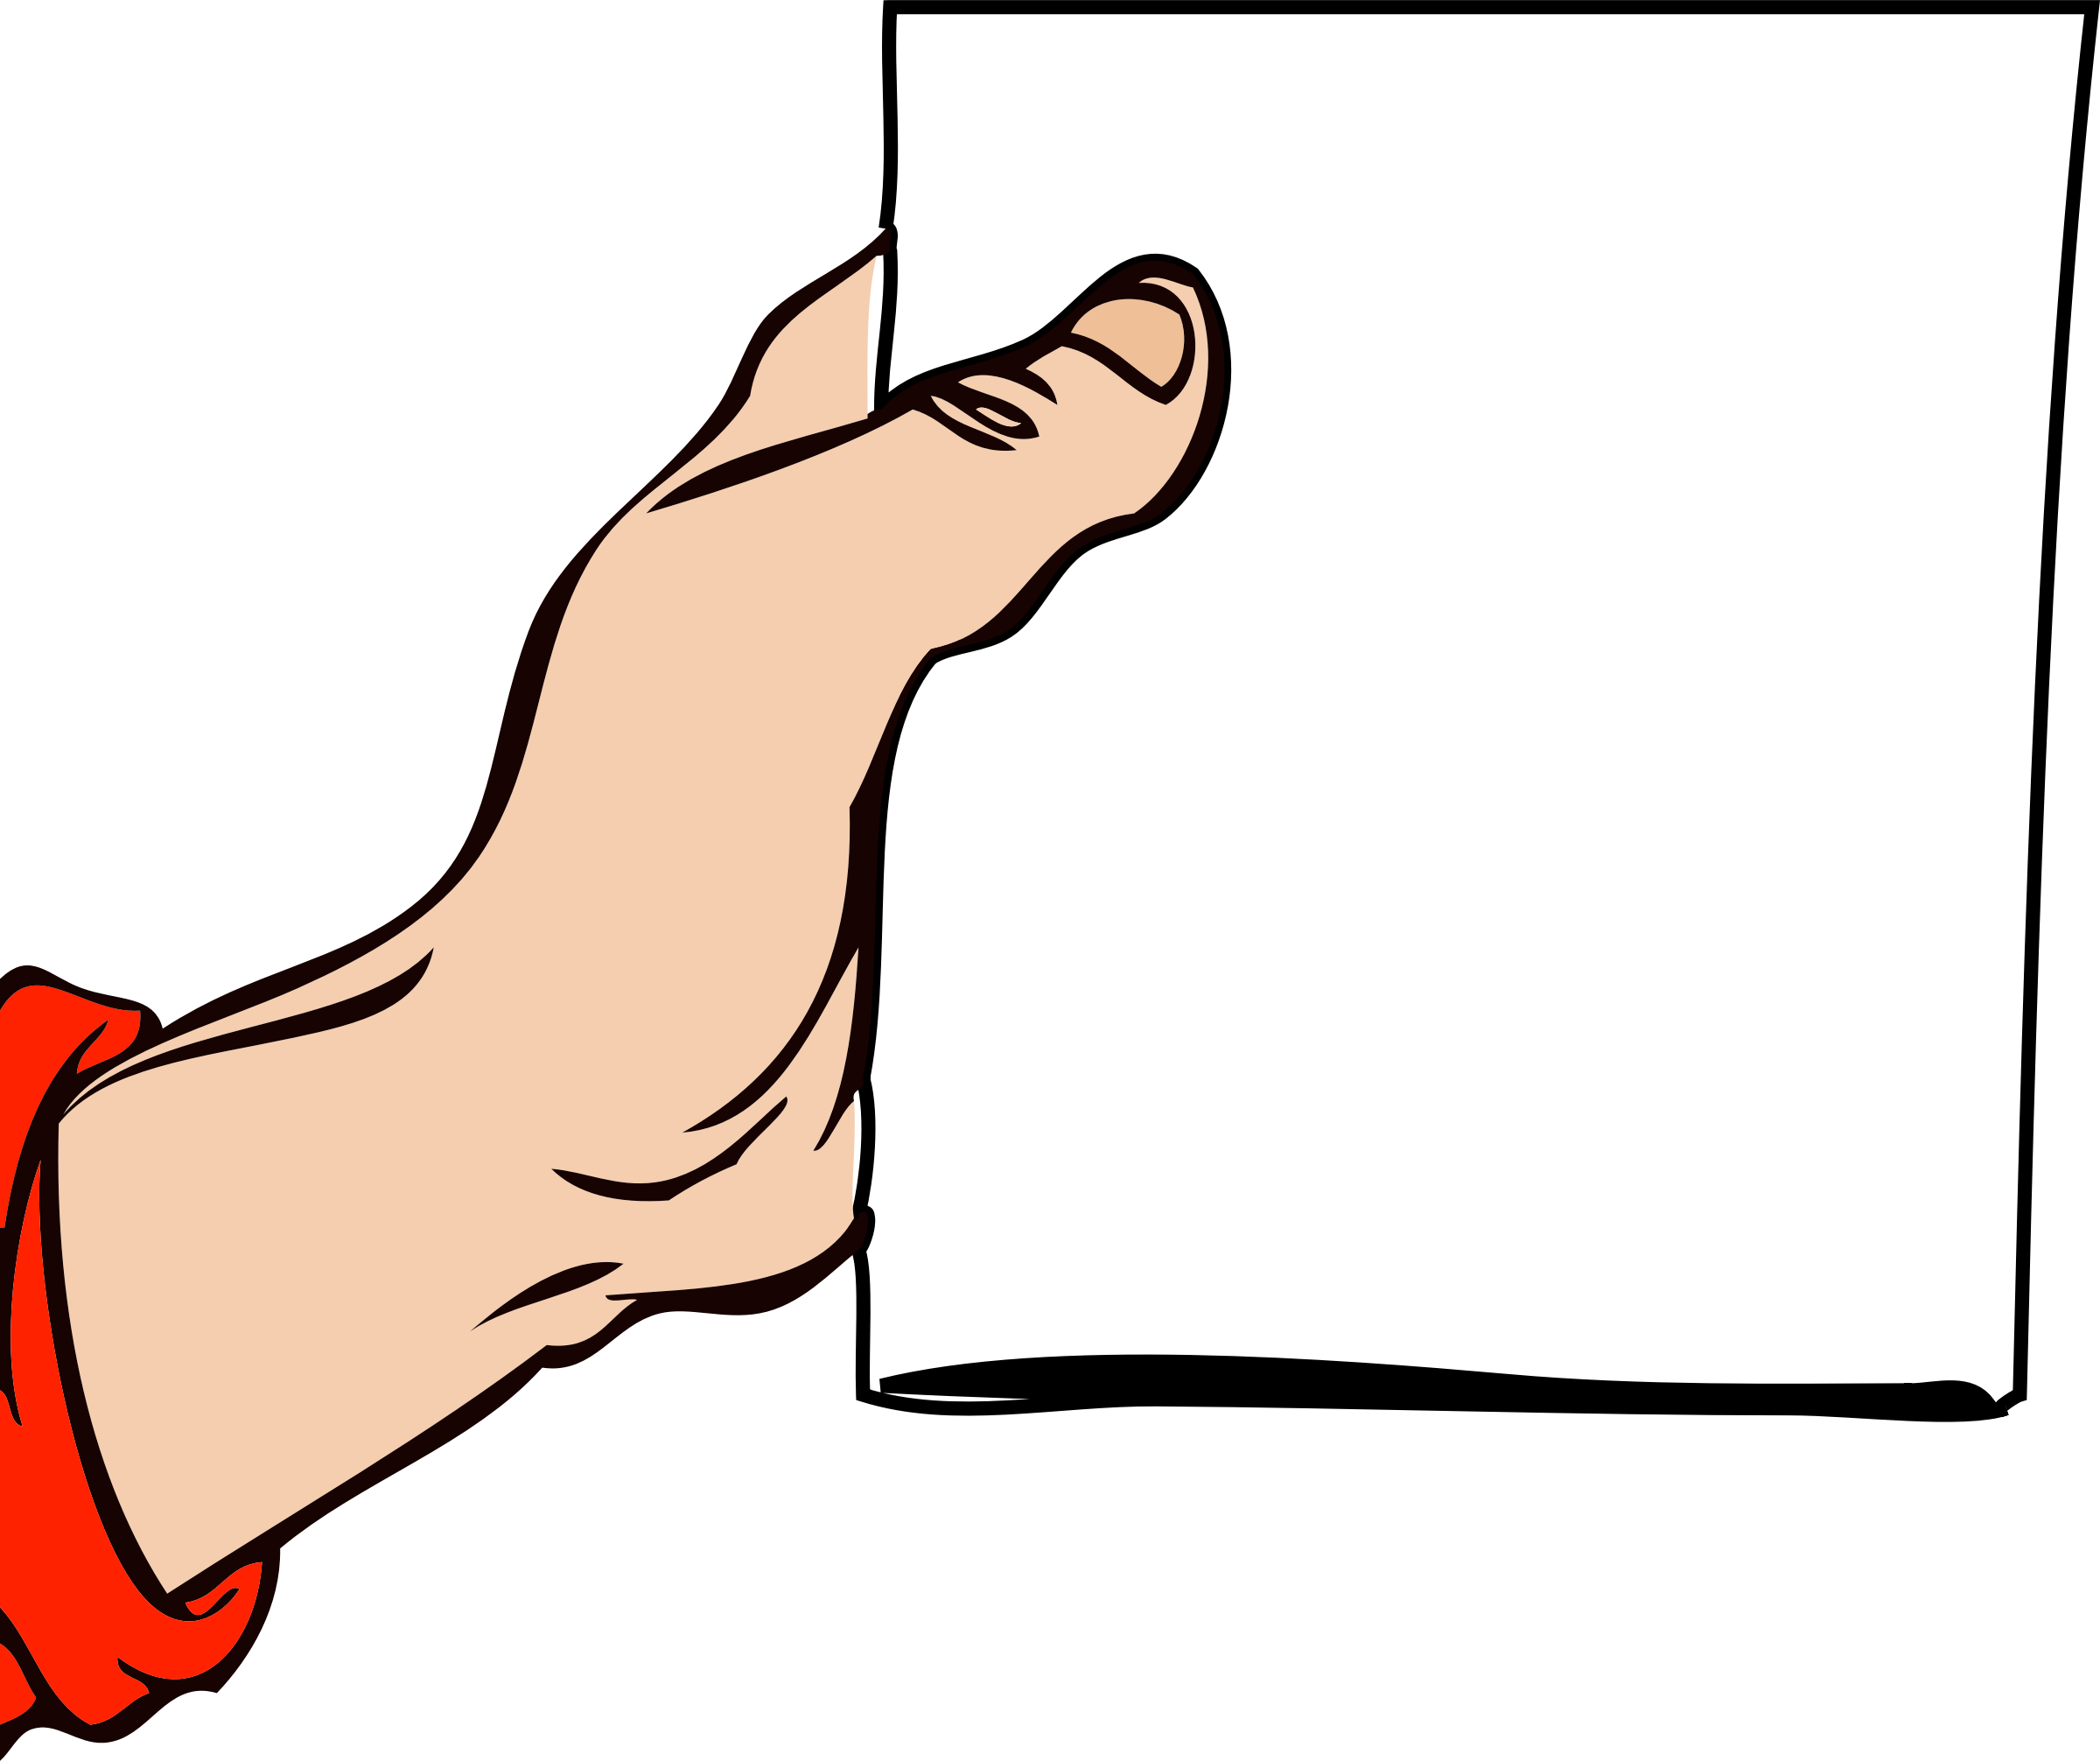 Brochure big image png. Clipart paper hand holding